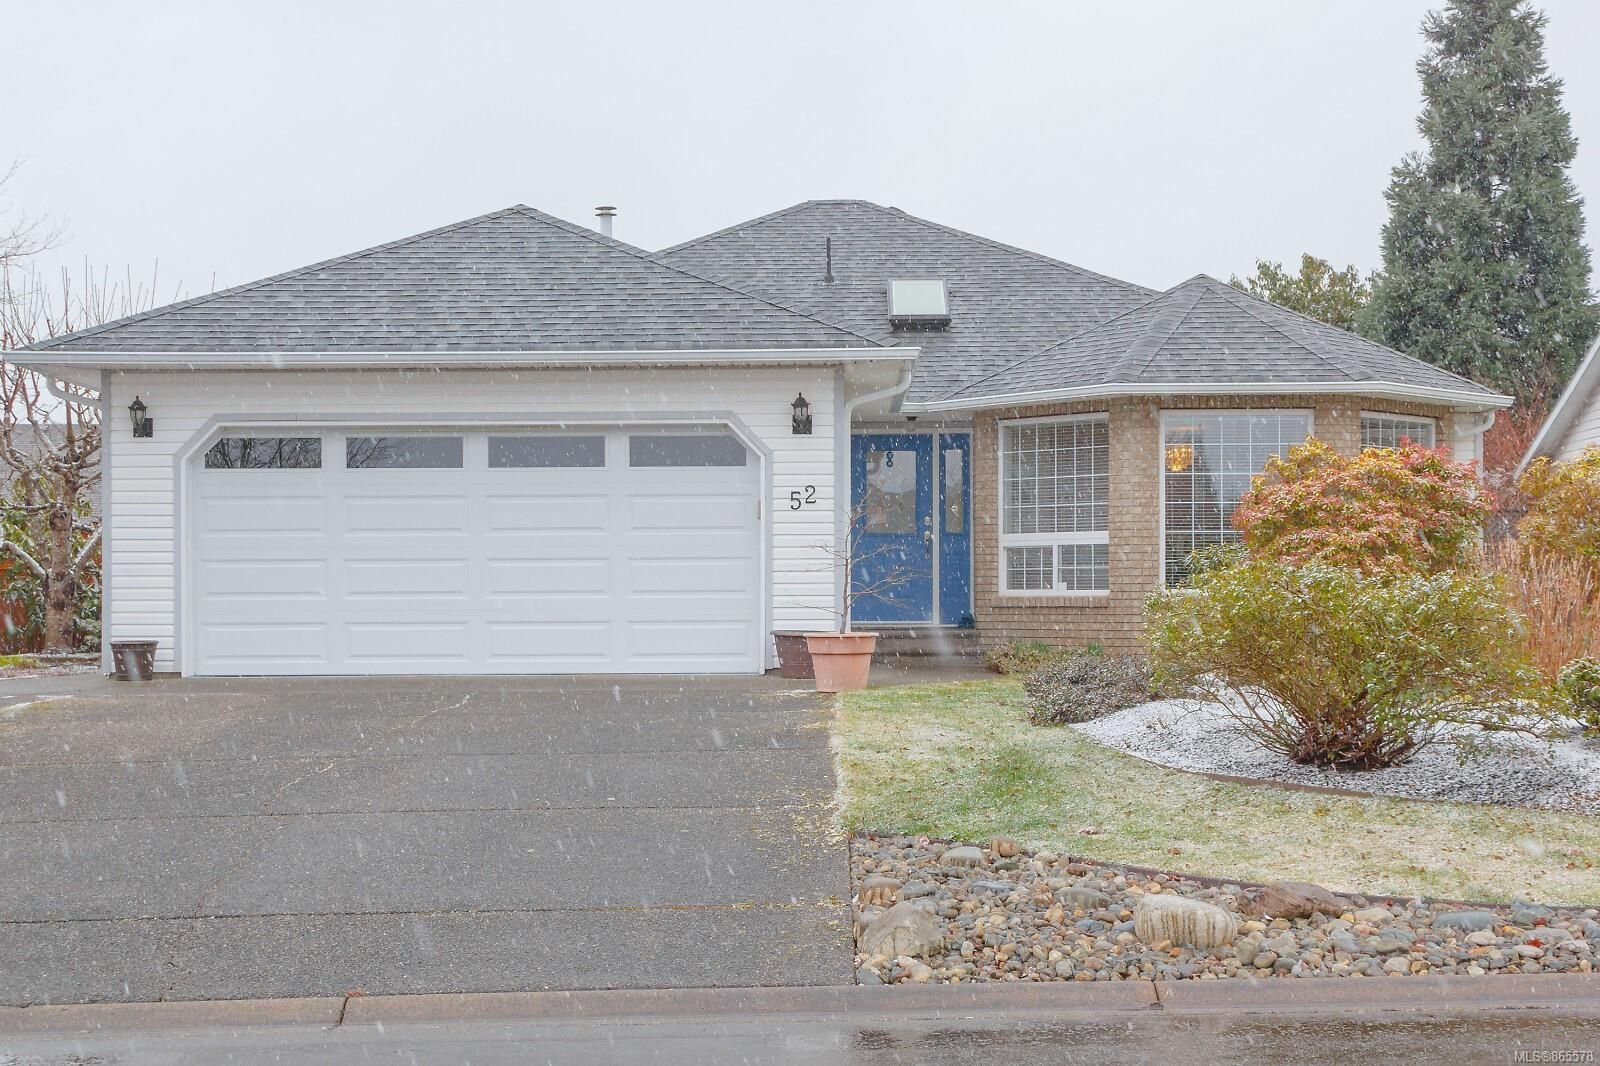 Main Photo: 52 Magnolia Dr in : PQ Parksville House for sale (Parksville/Qualicum)  : MLS®# 865578